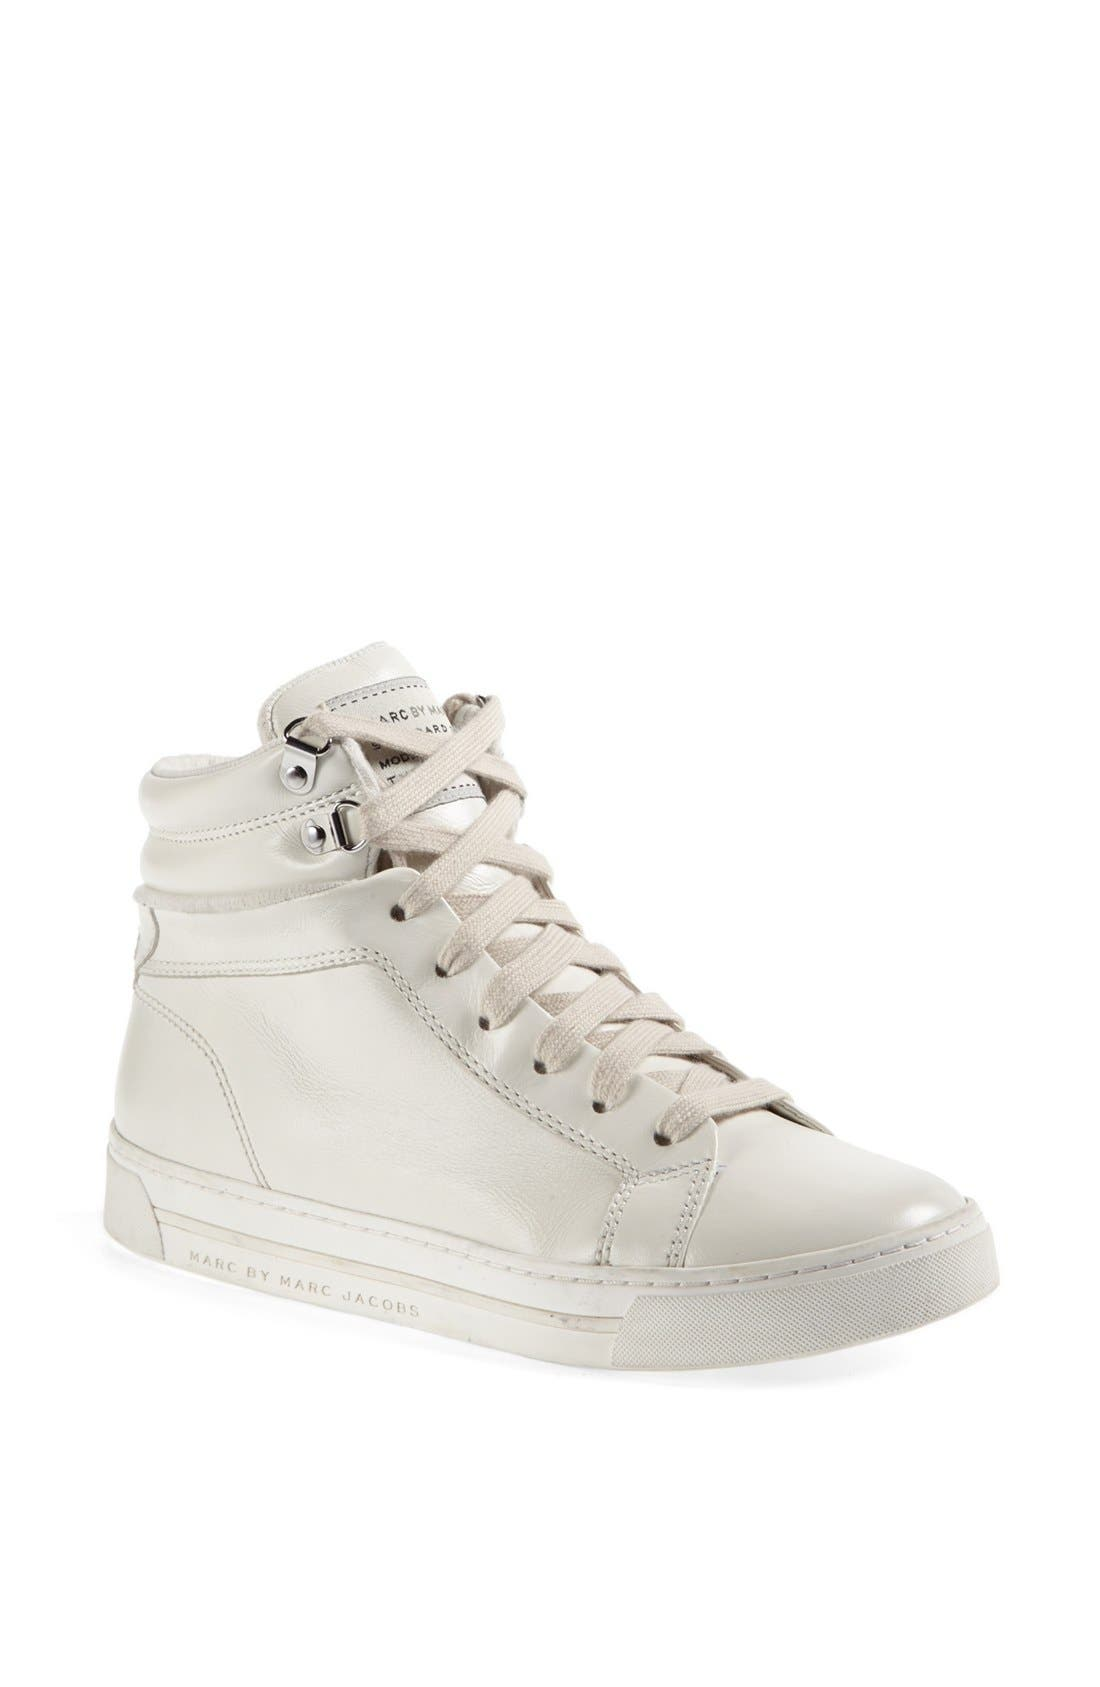 Main Image - MARC BY MARC JACOBS 'Cute Kicks' Sneaker (Online Only)